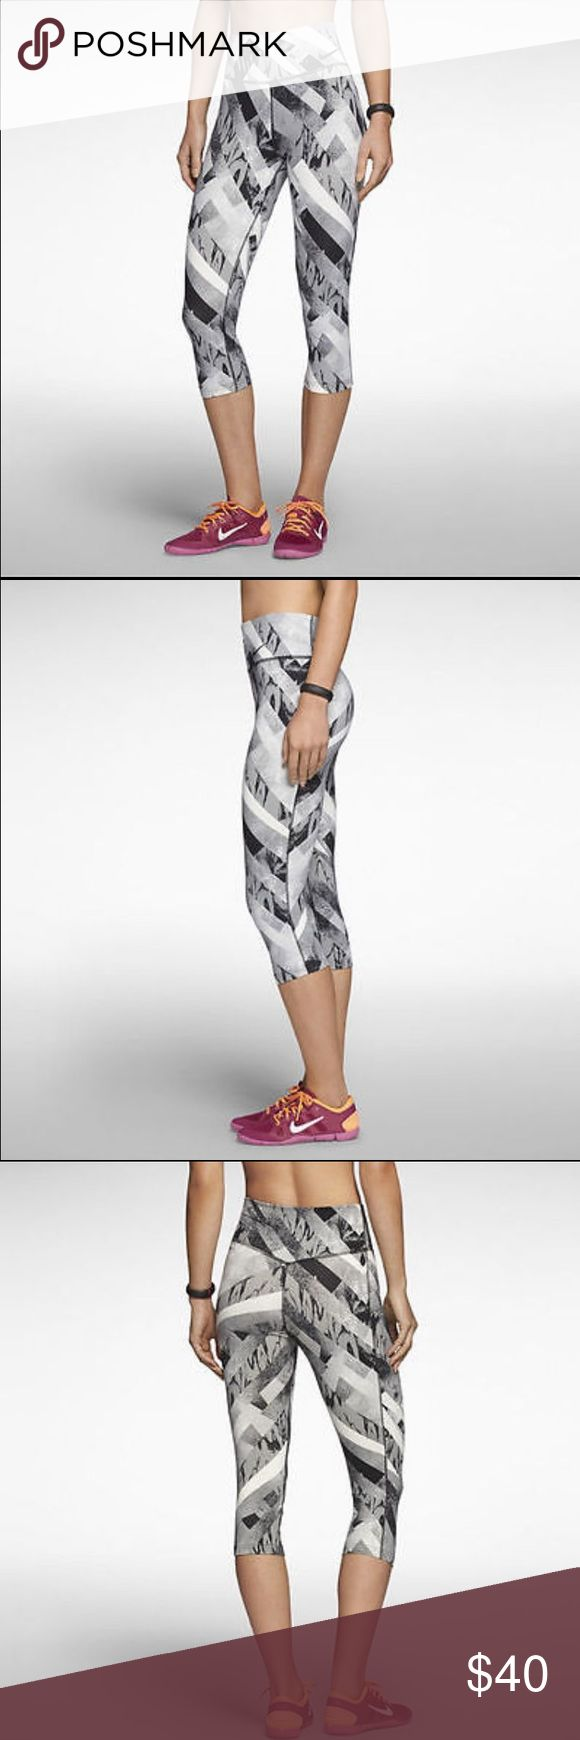 Women's legendary print tight training capris Featuring the softest fabric of any Nike training pants, the Nike legendary print tight women's training capris are designed with feminine lines and a fit that hugs your legs from hip to hem for maximum comfort and a flattering look during your workout. Nike Pants Capris